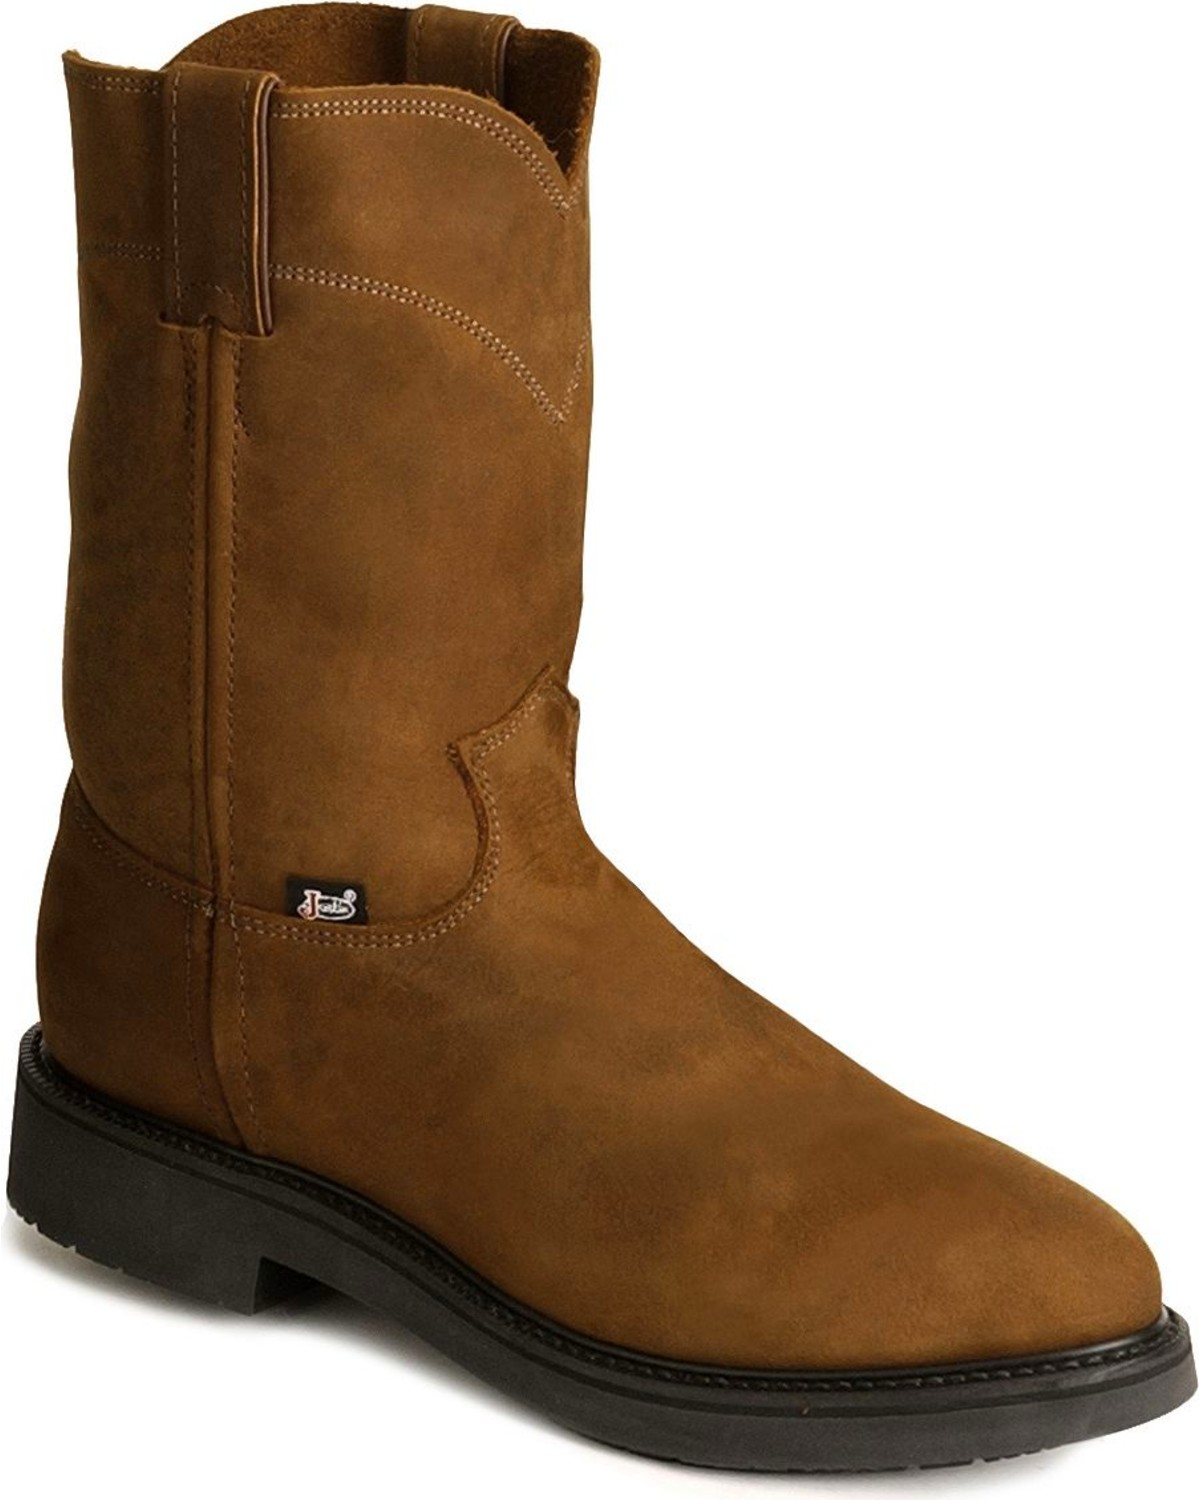 Justin Men's Work Boots | Boot Barn